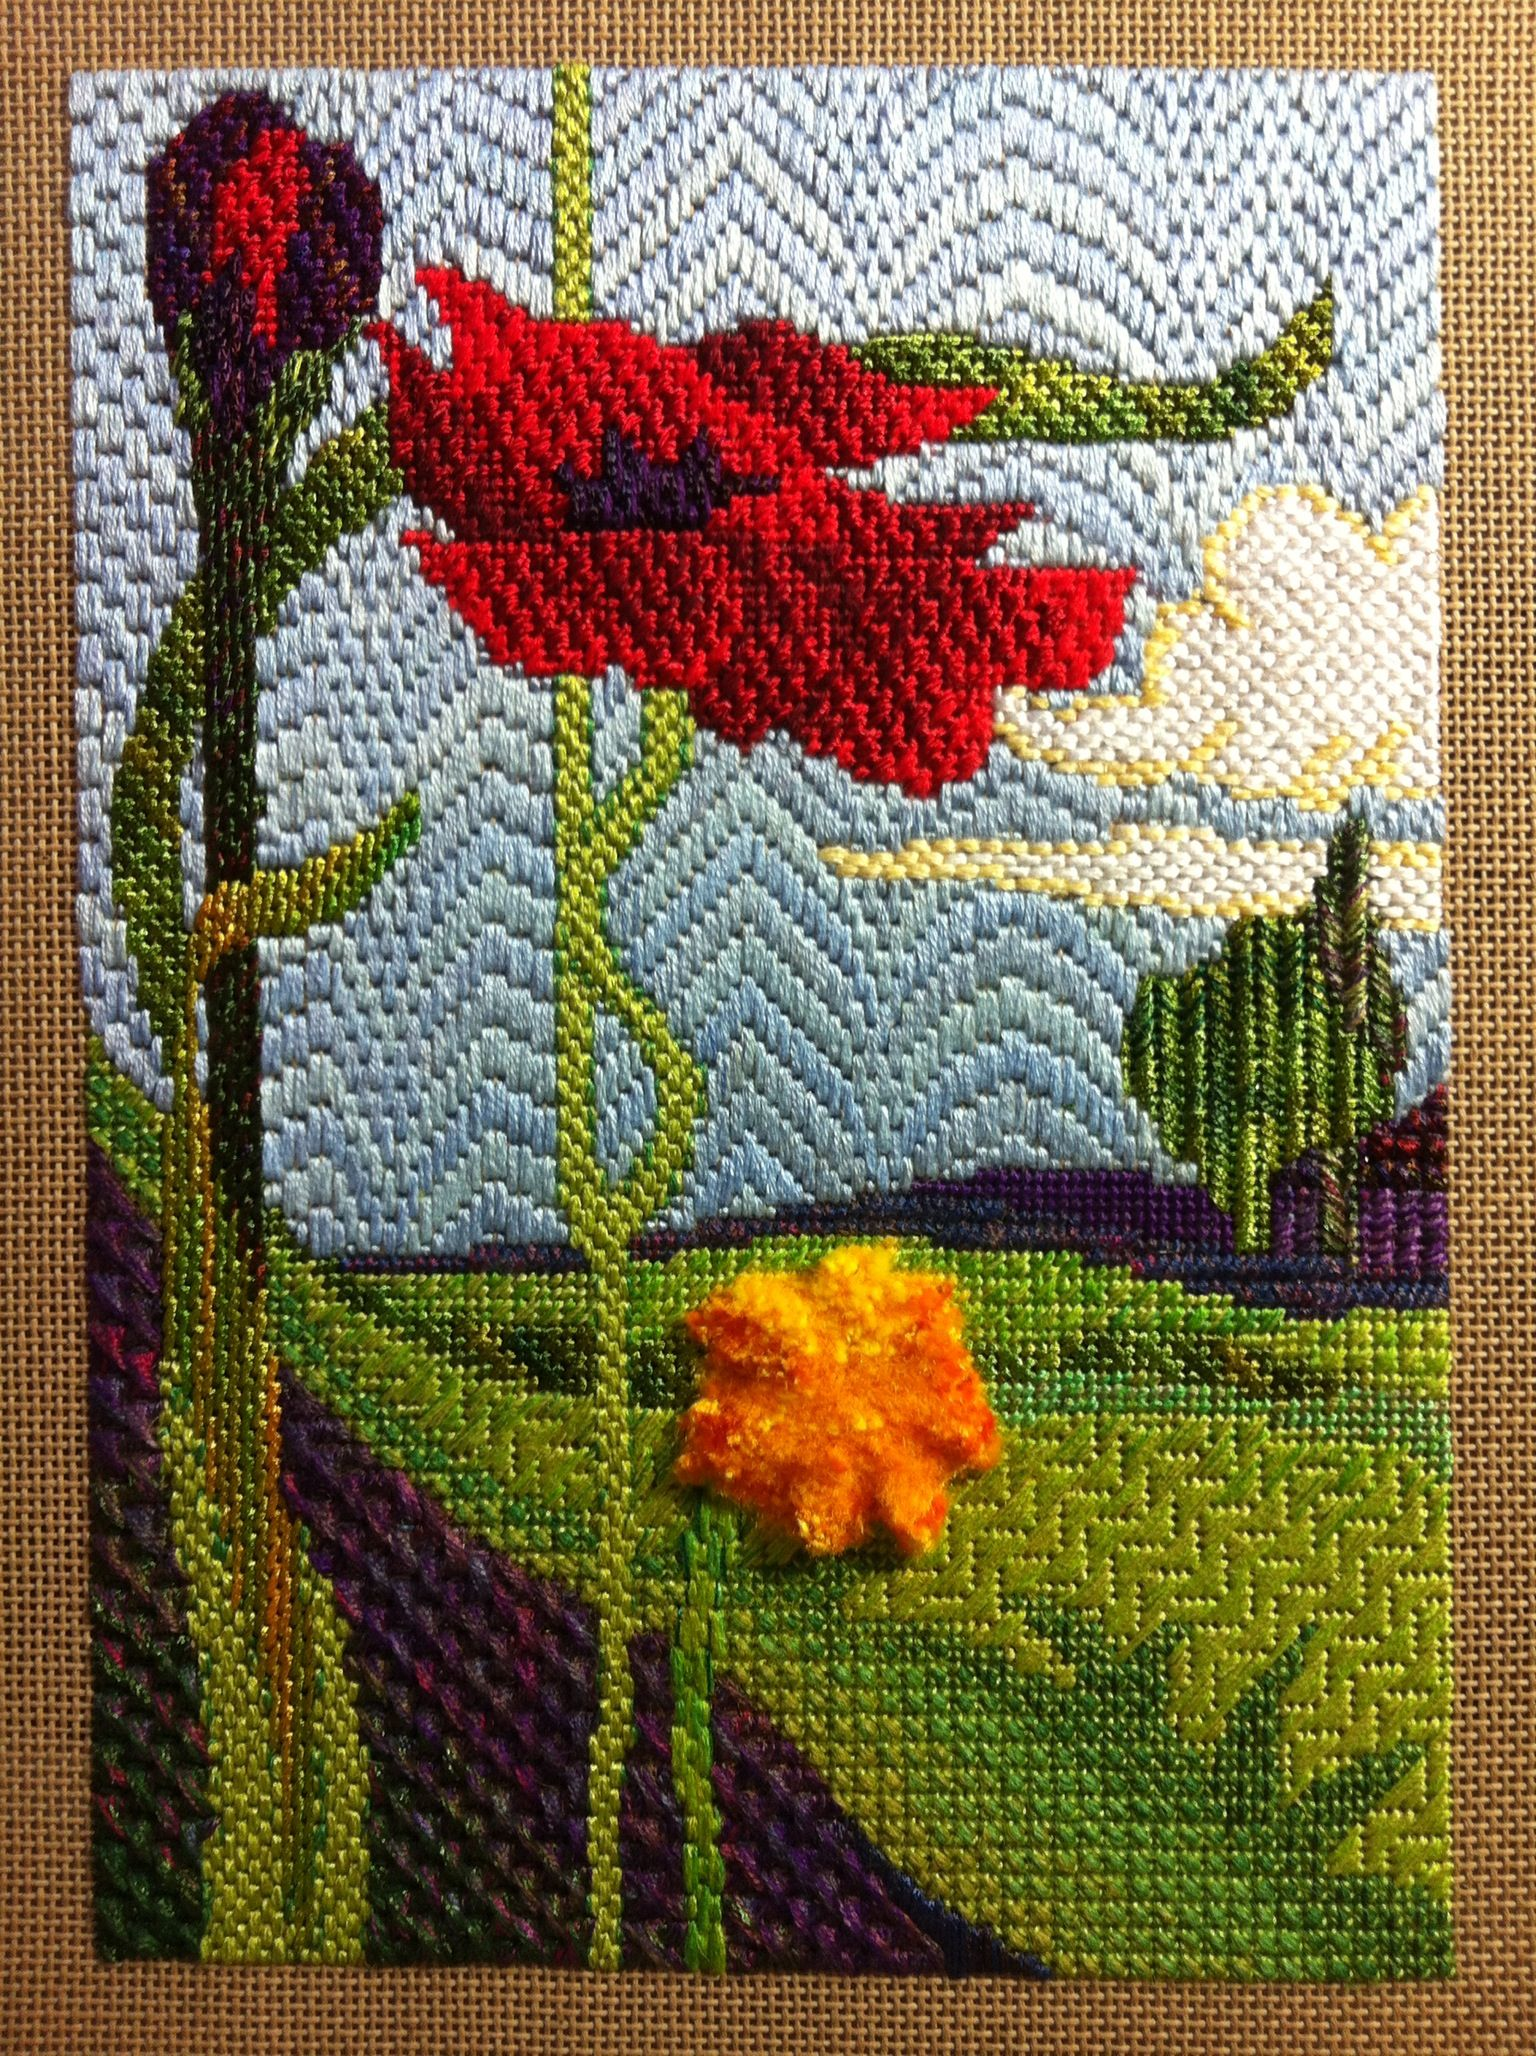 Royal School Of Needlework Canvas Stitches Embroidery- Stitched By Deborah Wilding 2013 Http ...